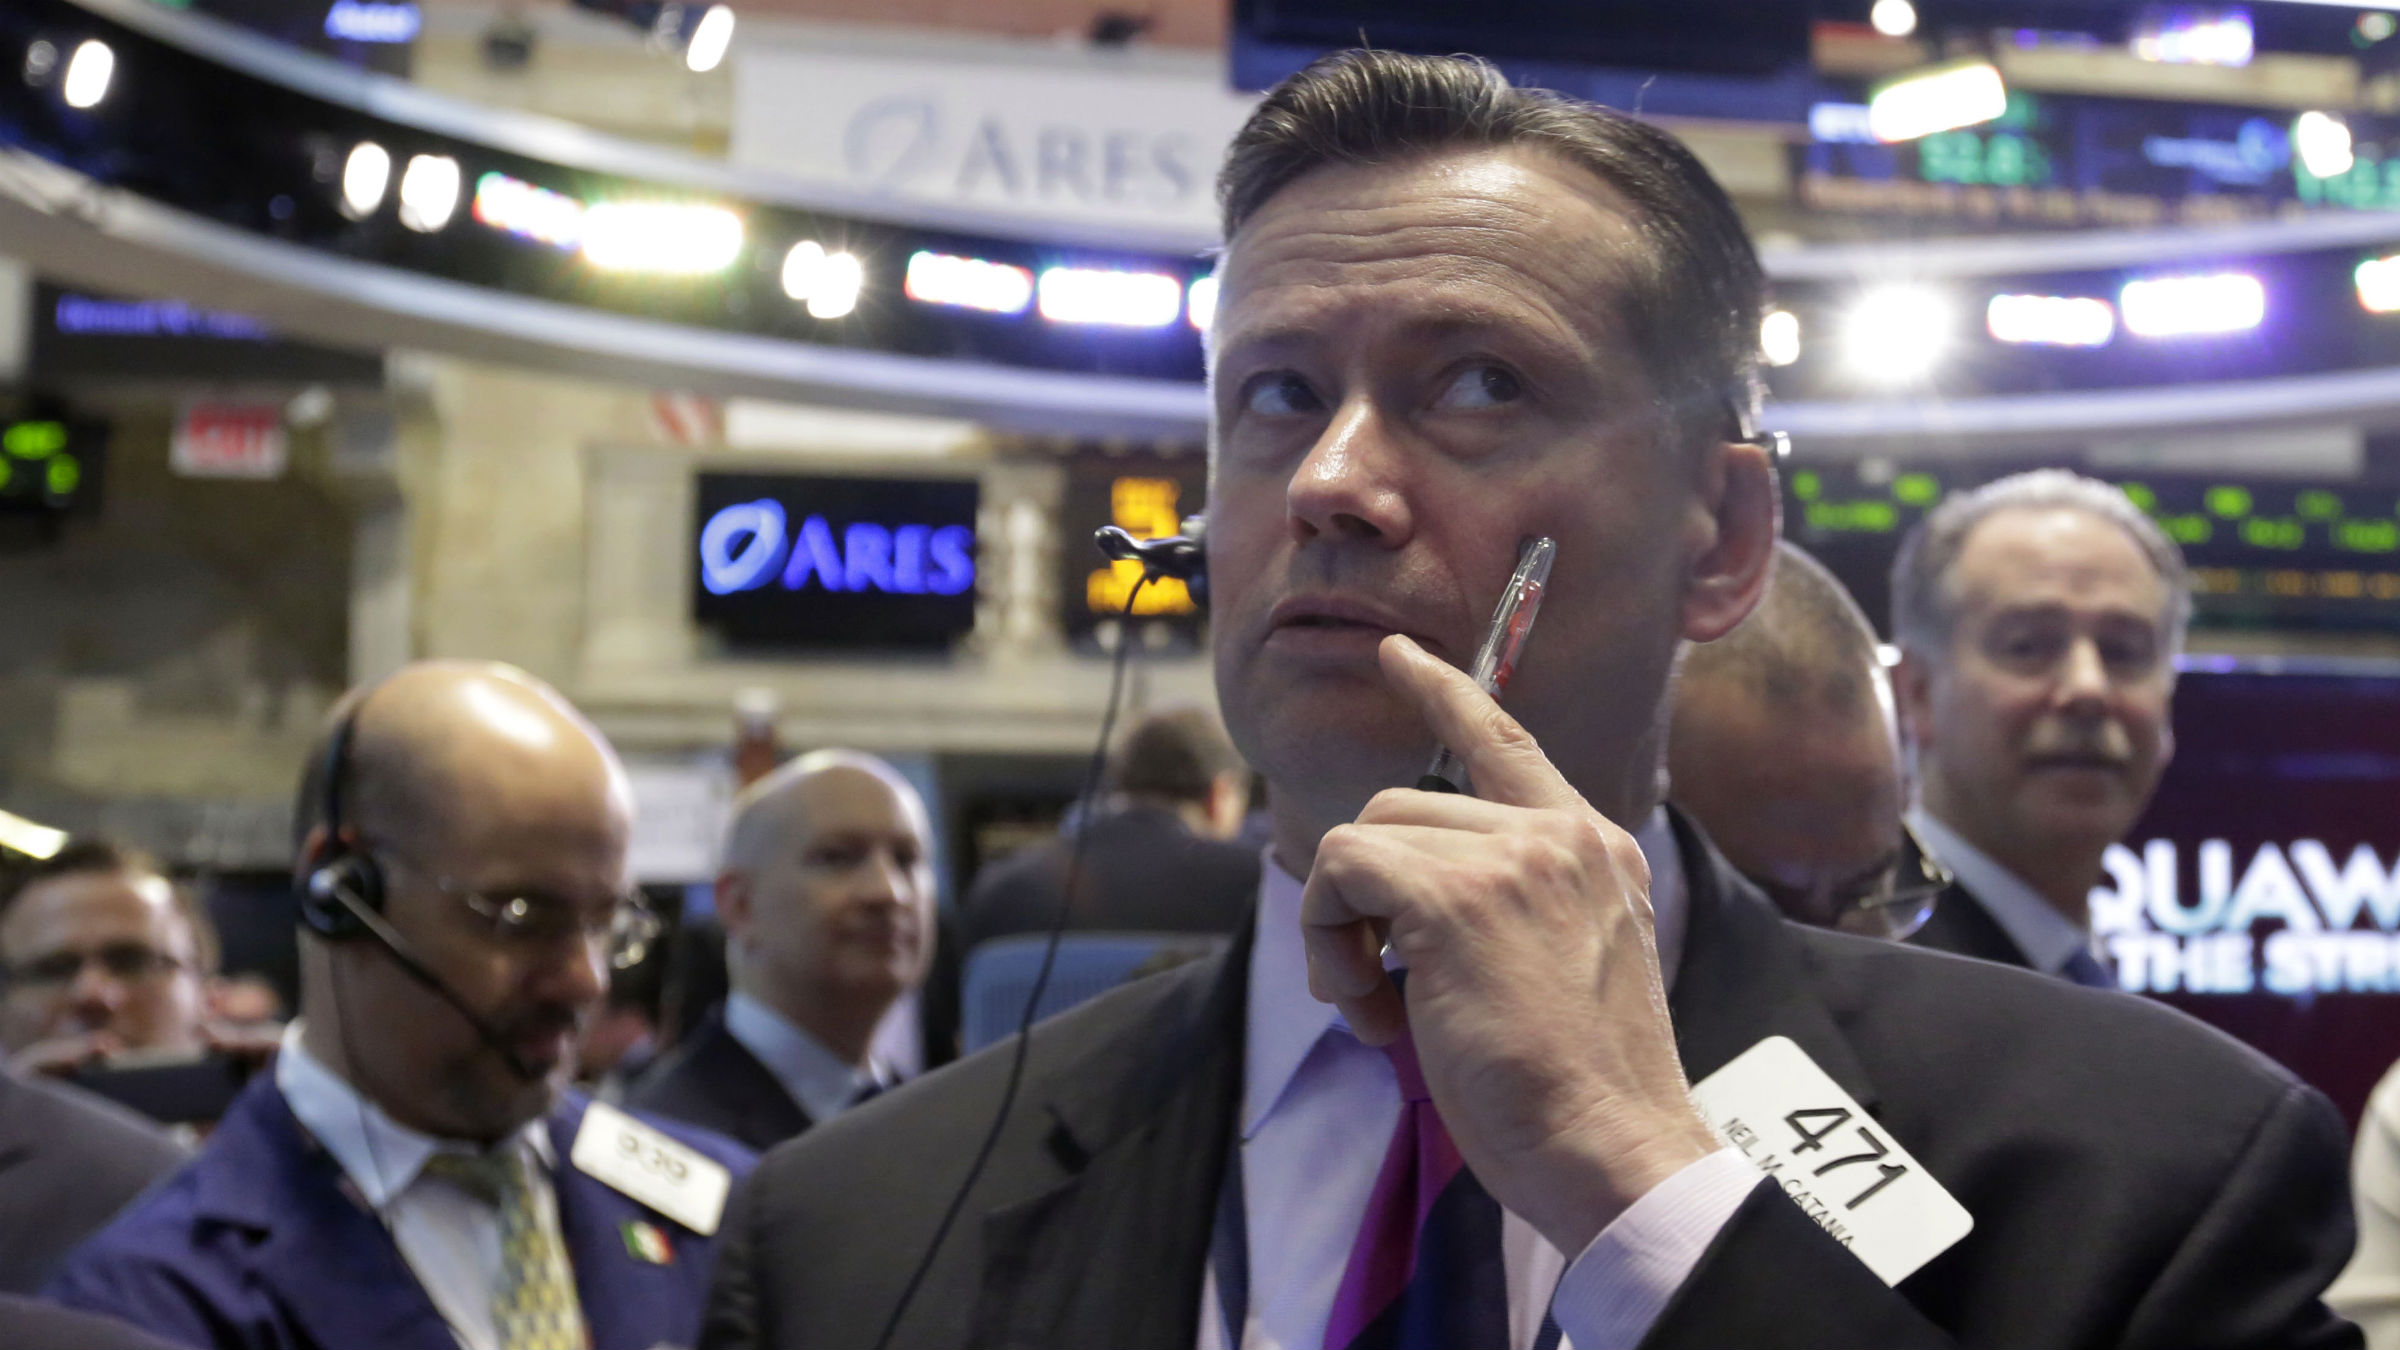 Trader Neil Catania, center, works on the floor of the New York Stock Exchange, Friday, May 2, 2014. U.S. stock futures are up slightly after the U.S. unemployment rate hit its lowest level in more than five years. The government reported the unemployment rate sank to 6.3 percent.